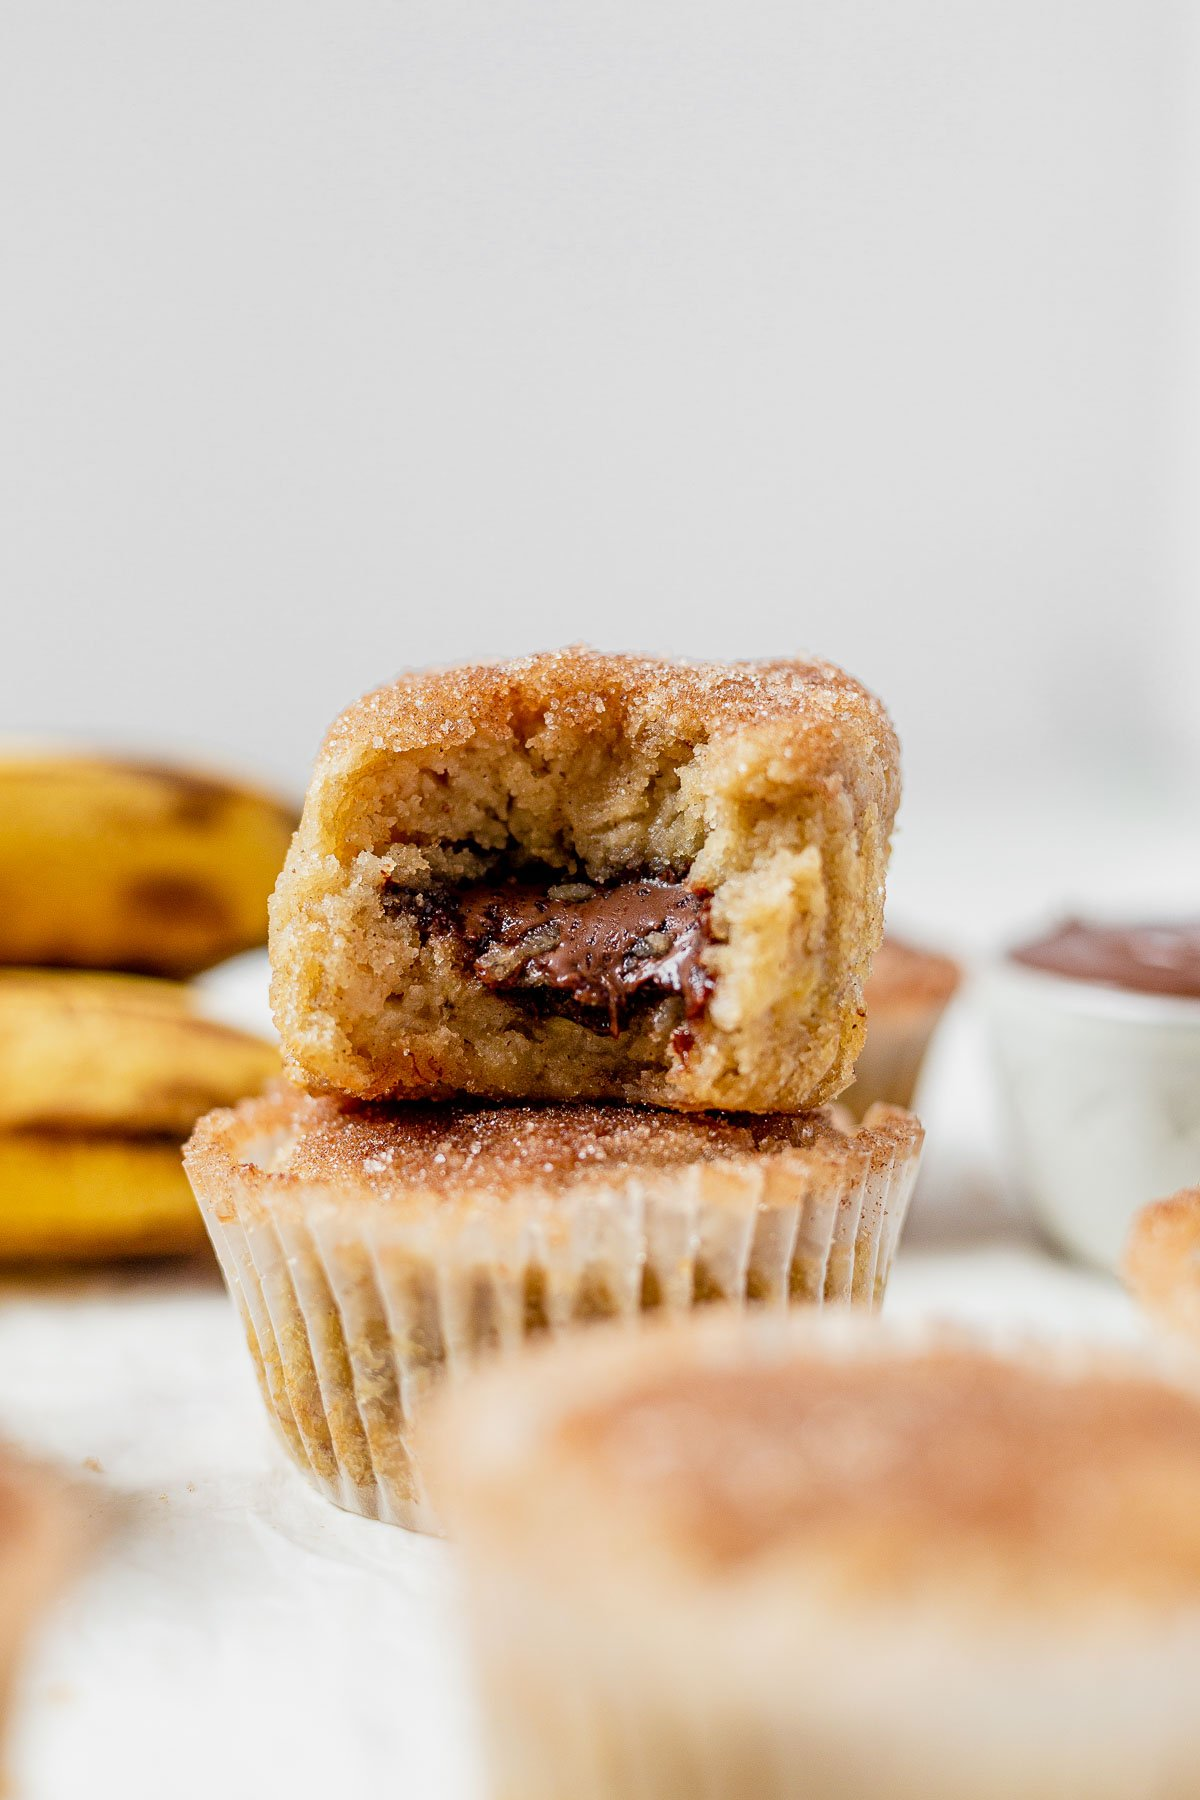 two banana nutella muffins stacked on top of each other and the top one has a bite taken out so you can see the gooey nutella inside